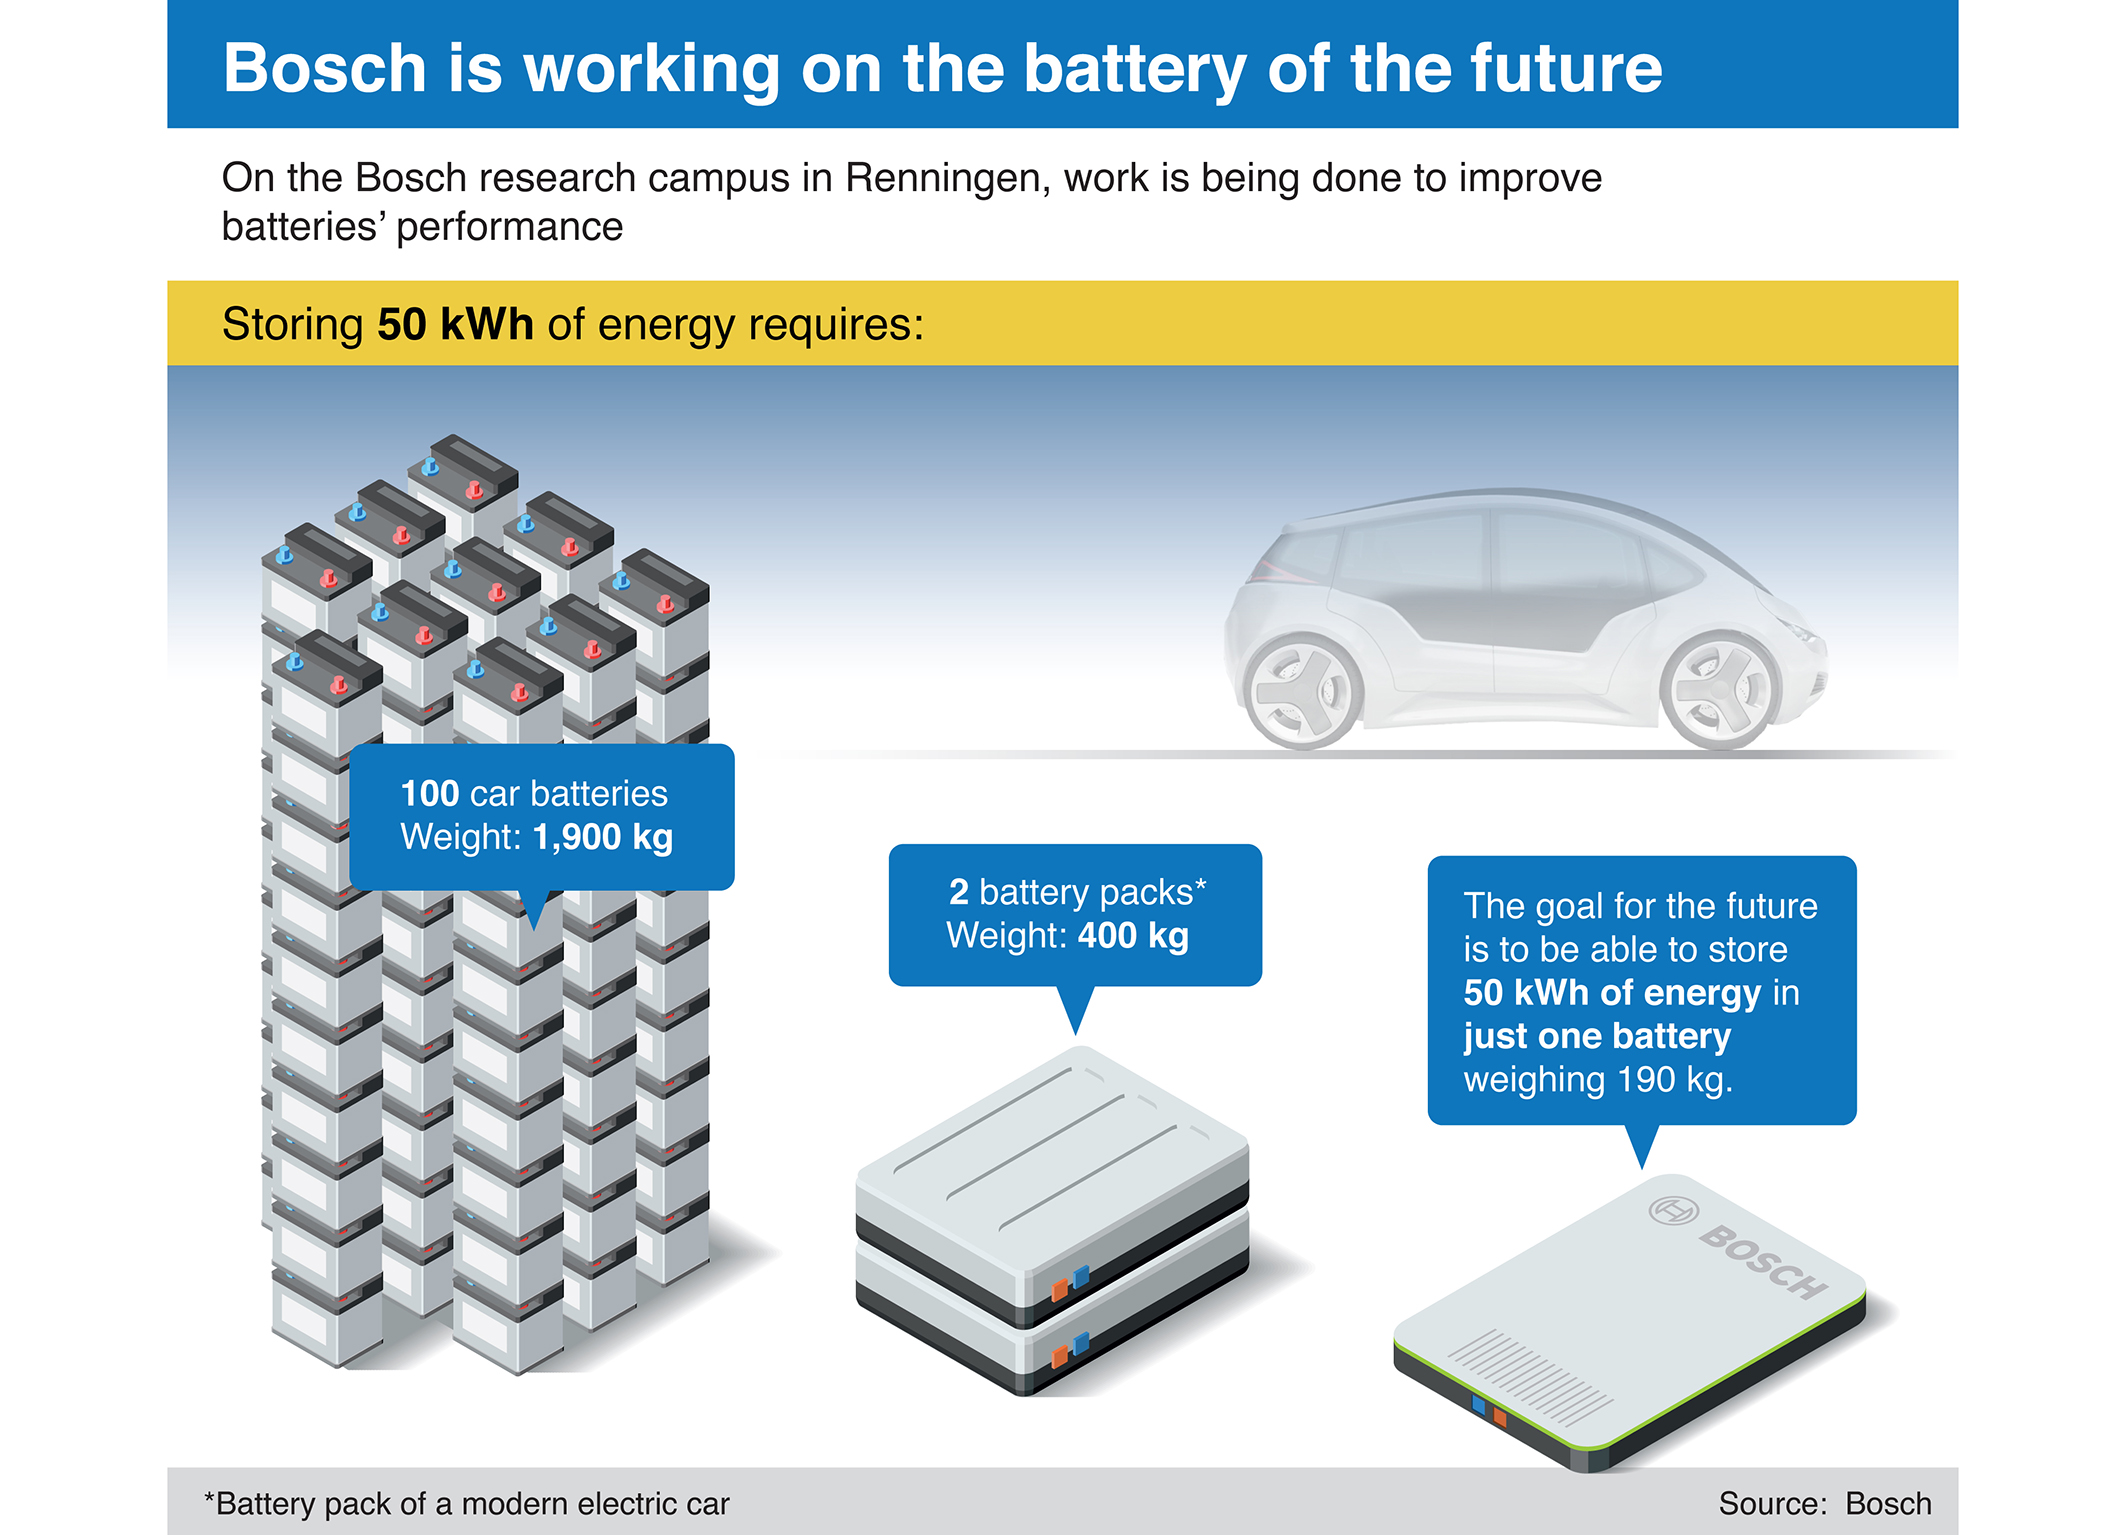 Bosch is working on the battery of the future